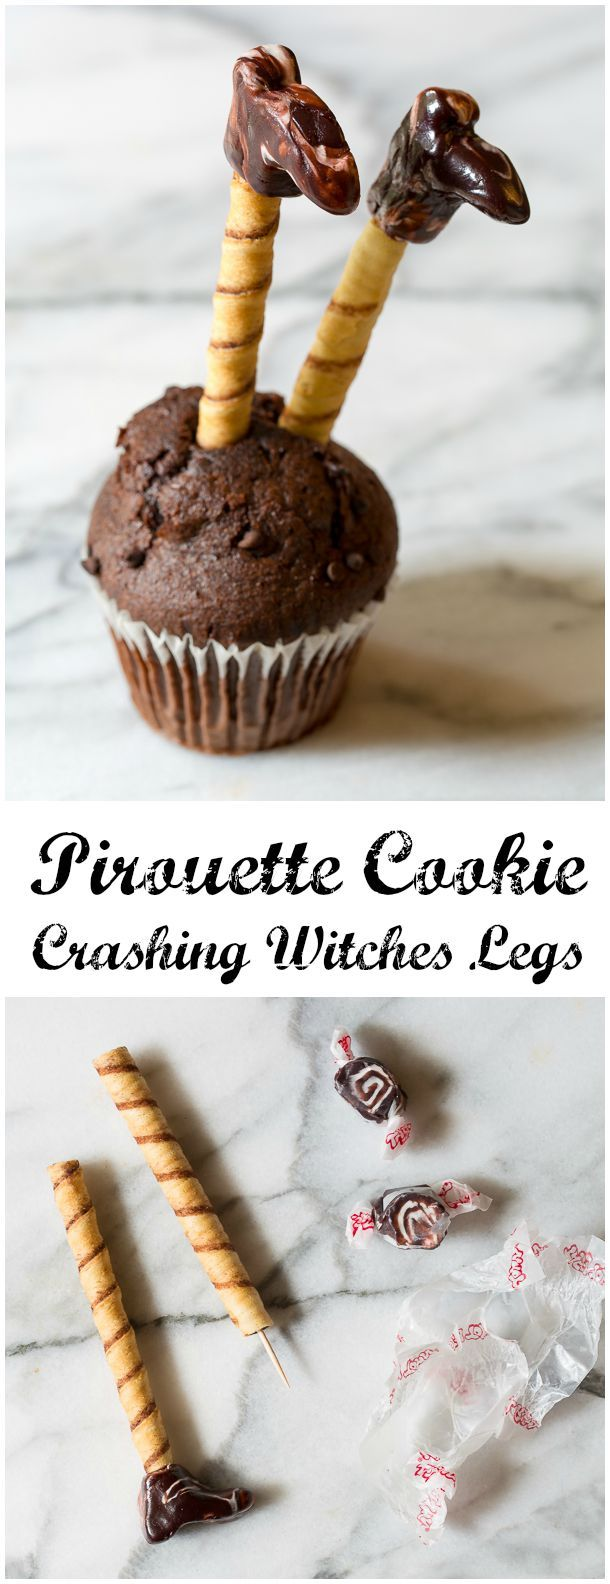 Learn How to Make Crashing Witches Legs - 5 Easy Halloween Treats Made with Pirouette Cookies!